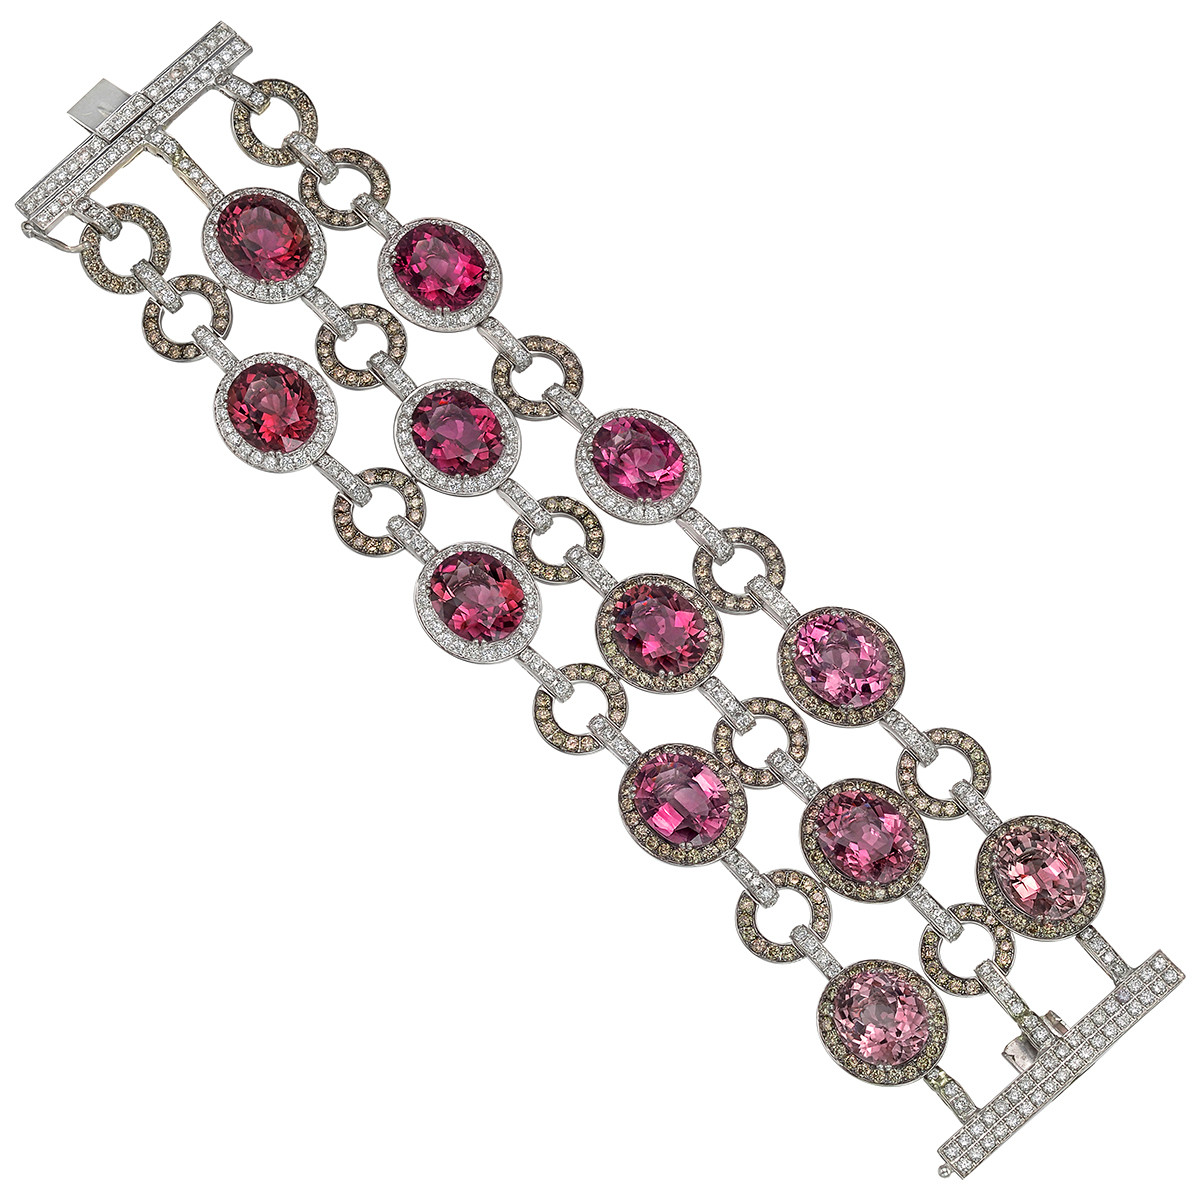 Pink Tourmaline & Multicolored Diamond Bracelet